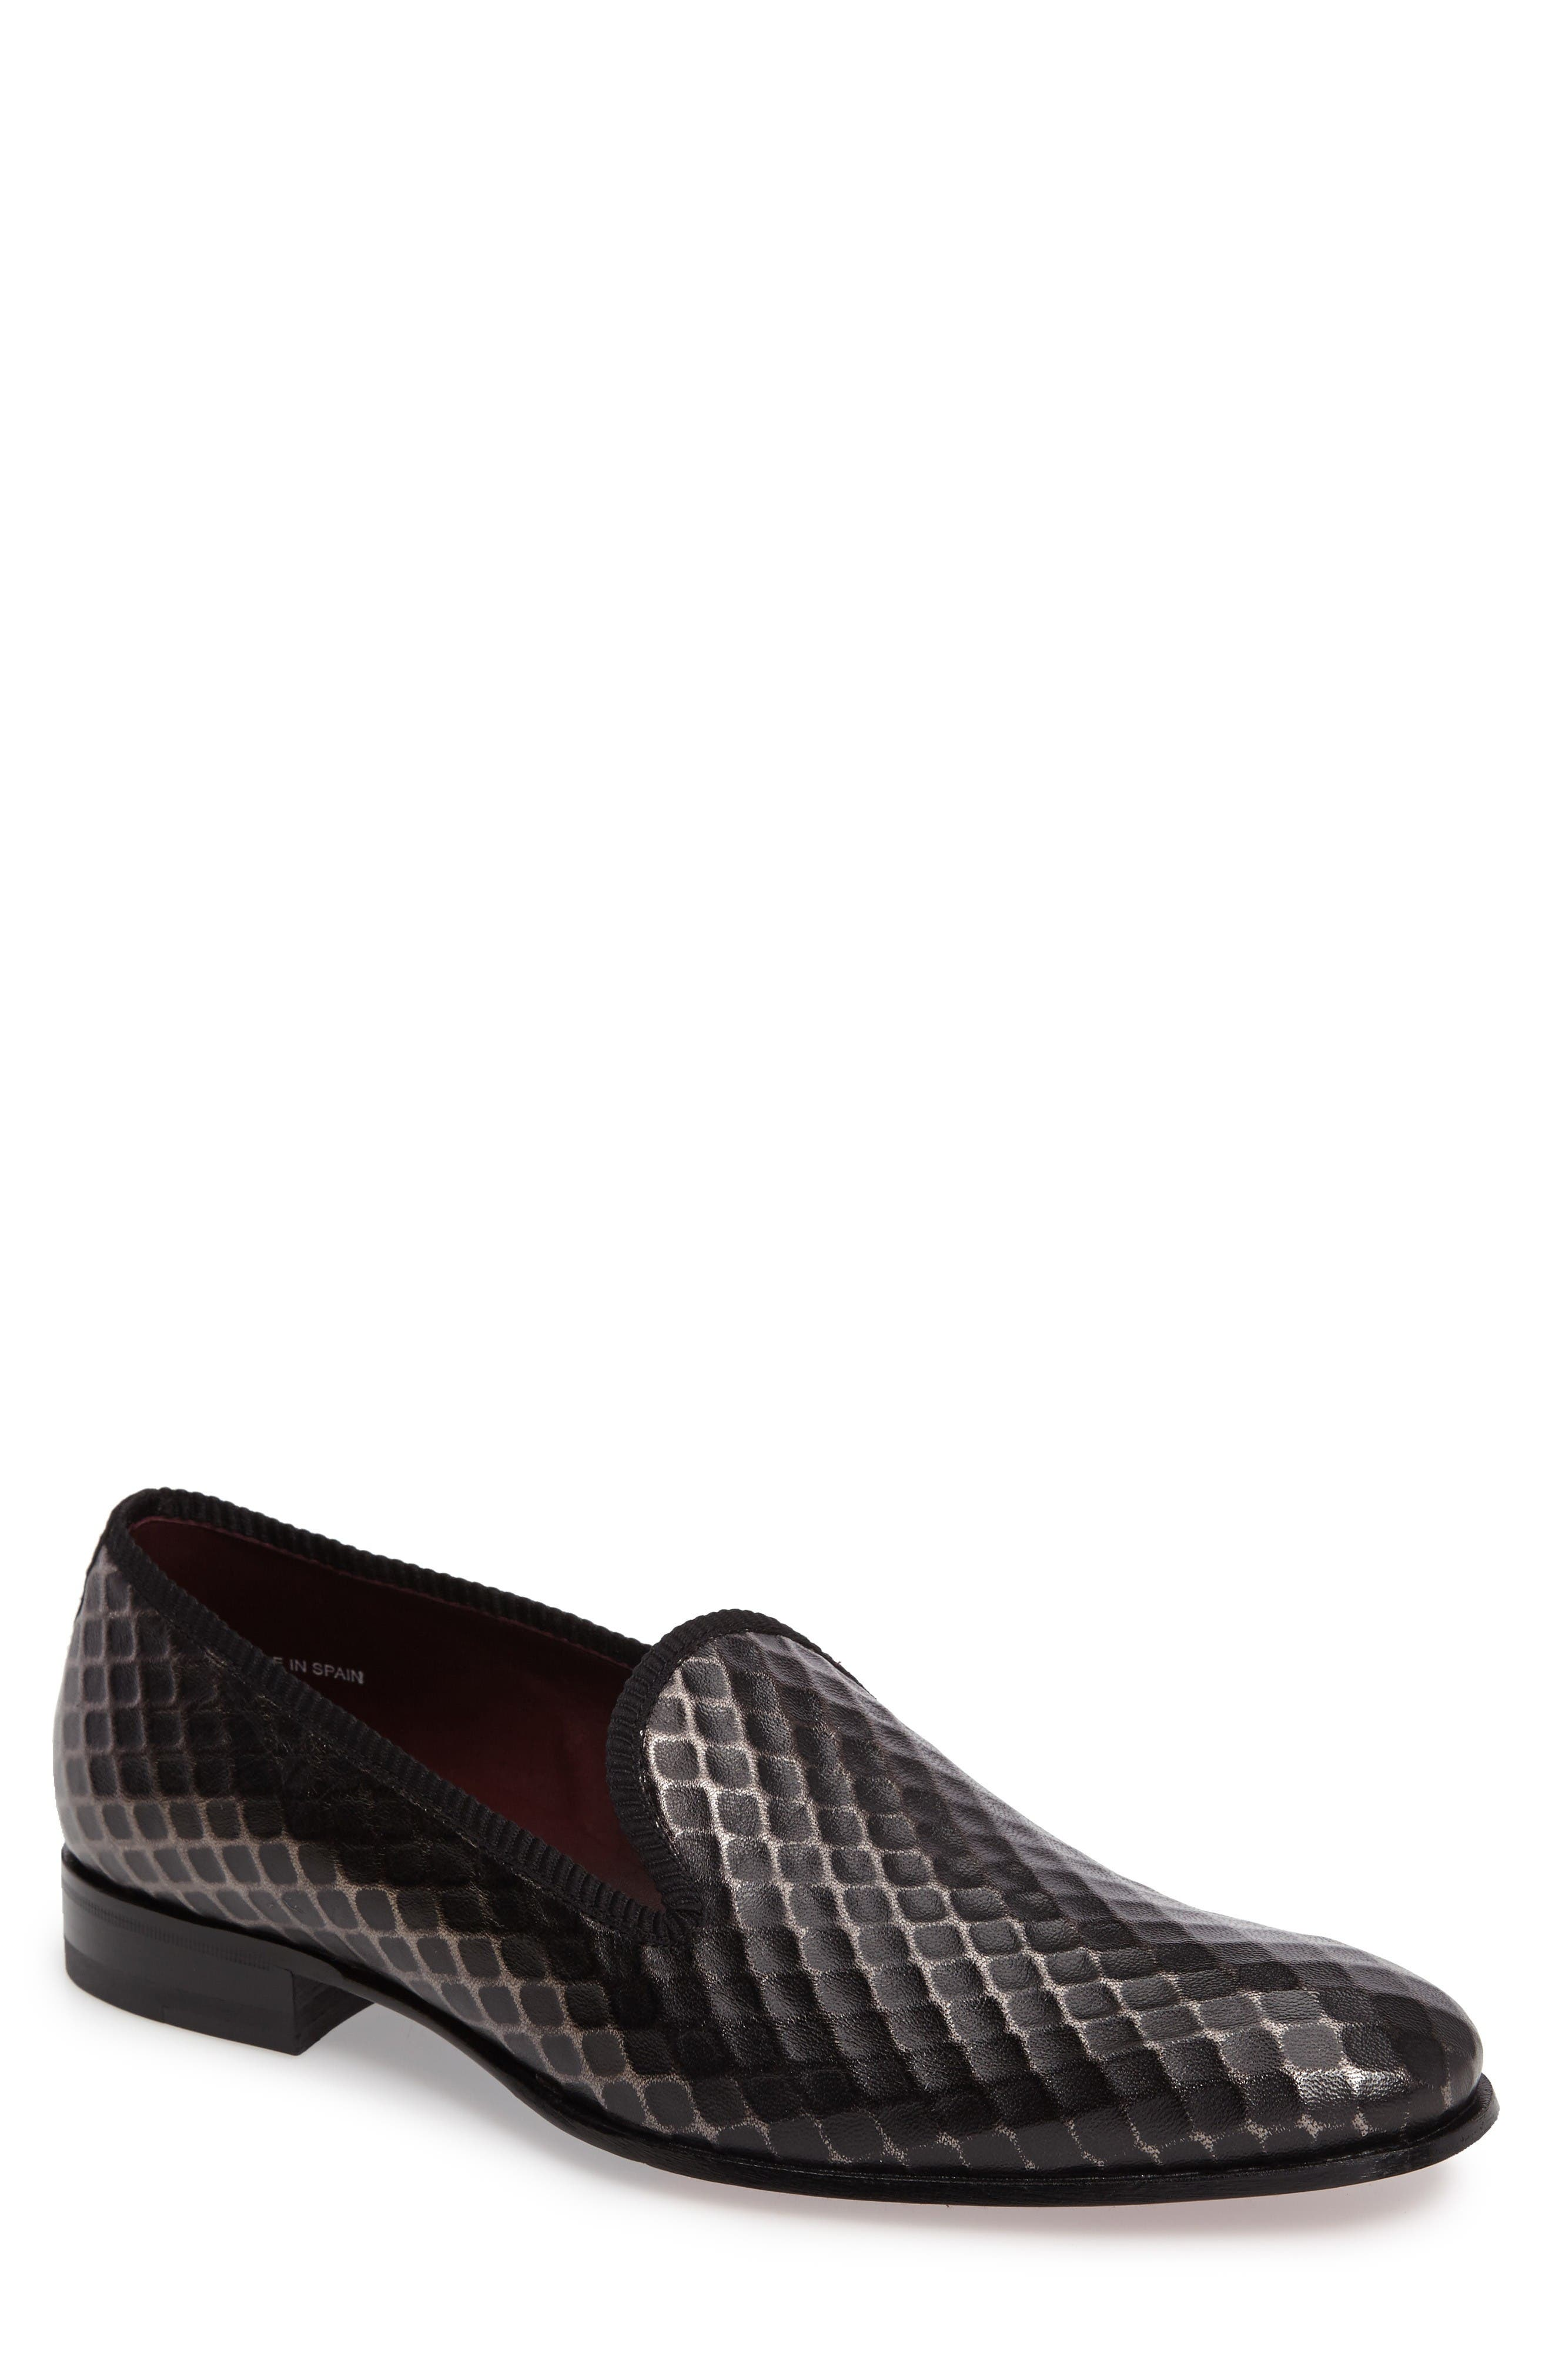 Hilbert Loafer,                         Main,                         color, Grey Leather